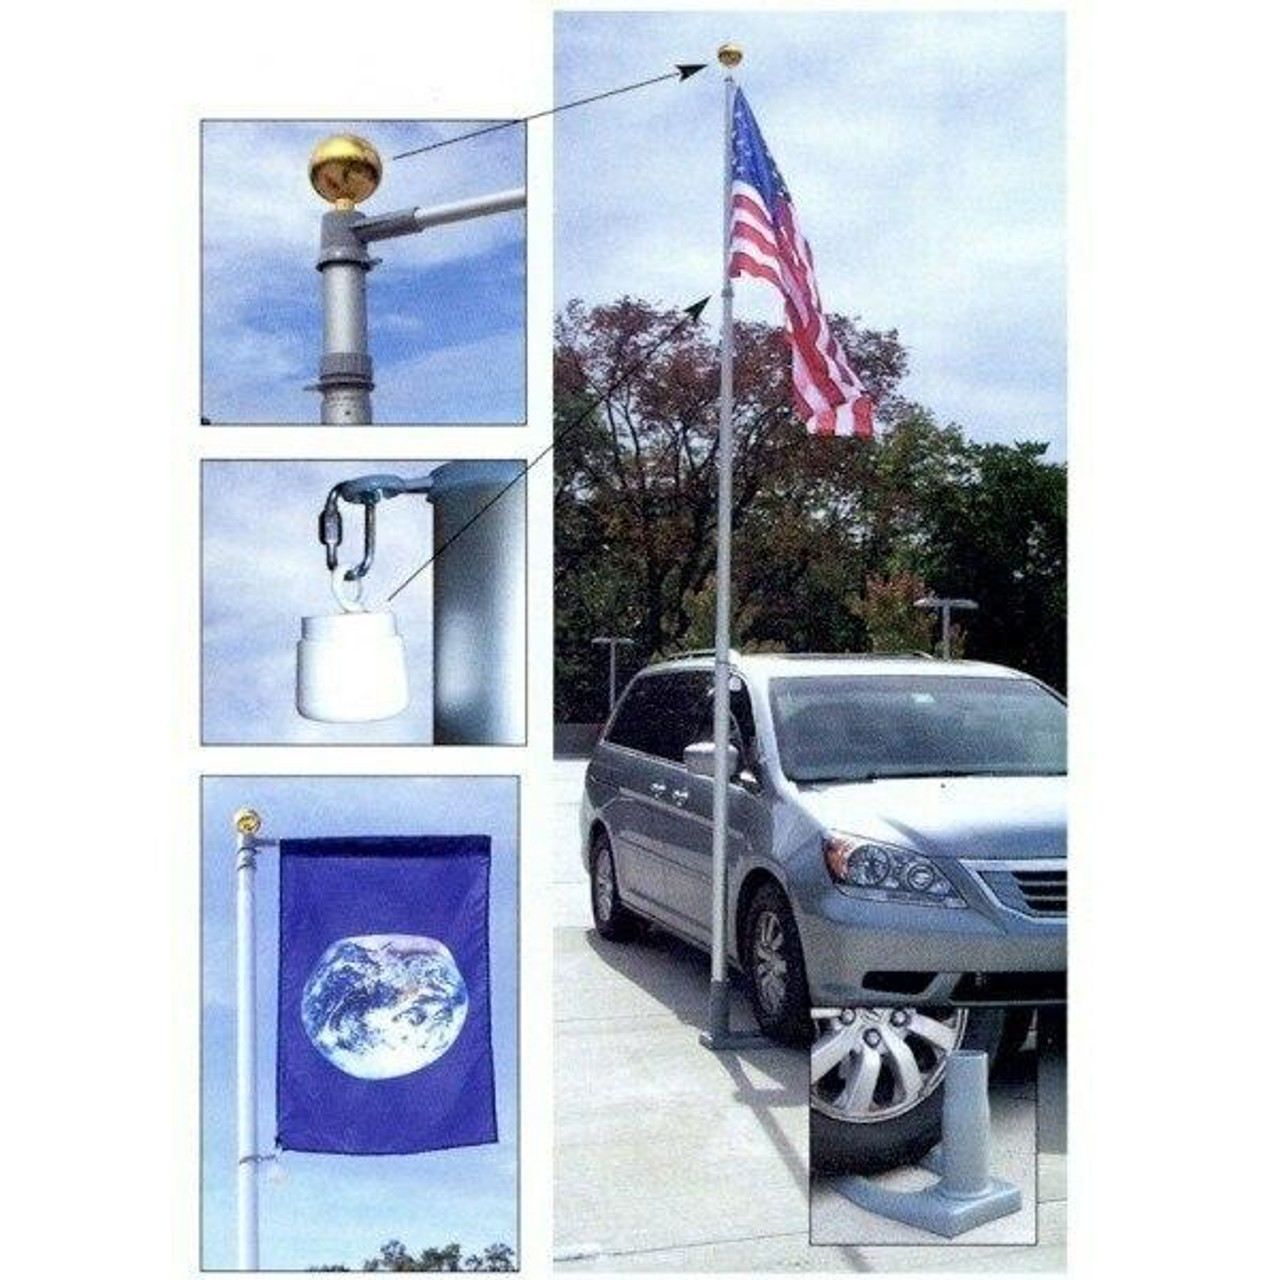 Multiple photos are included. On the right is the primary photo, with the 19' telescoping flagpole inserted in the included wheel stand, which is safely parked under a car's tire. An American flag hangs off the flagpole. In the top left of this image is a small photo with an arrow pointing to the top of the flagpole, showing a zoomed-in detail photo of the golden aluminum ball capping the flagpole. In the bottom left corner is a detail photo with the flag with a banner, showing off the included 3' banner arm.